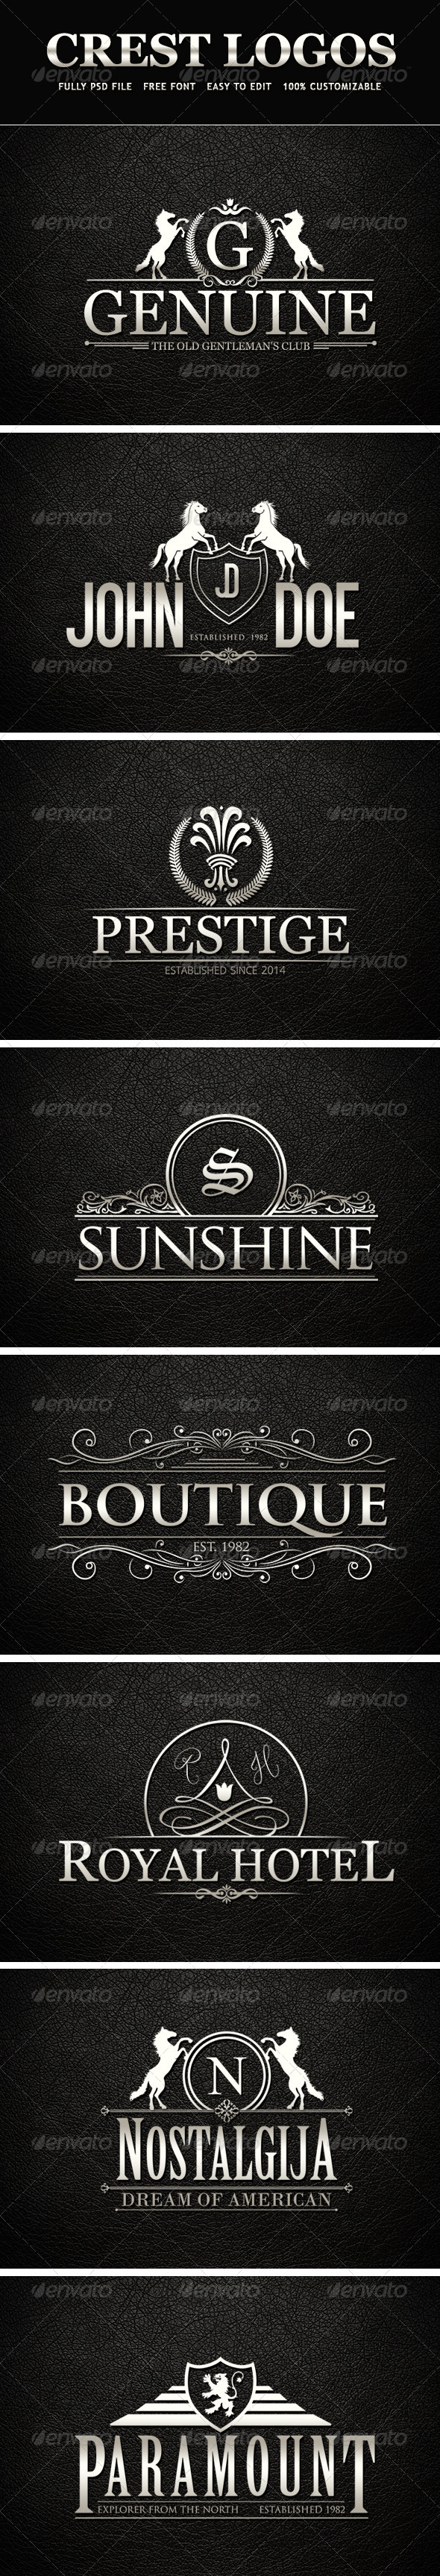 GraphicRiver Crest Logos Vol 01 7786088